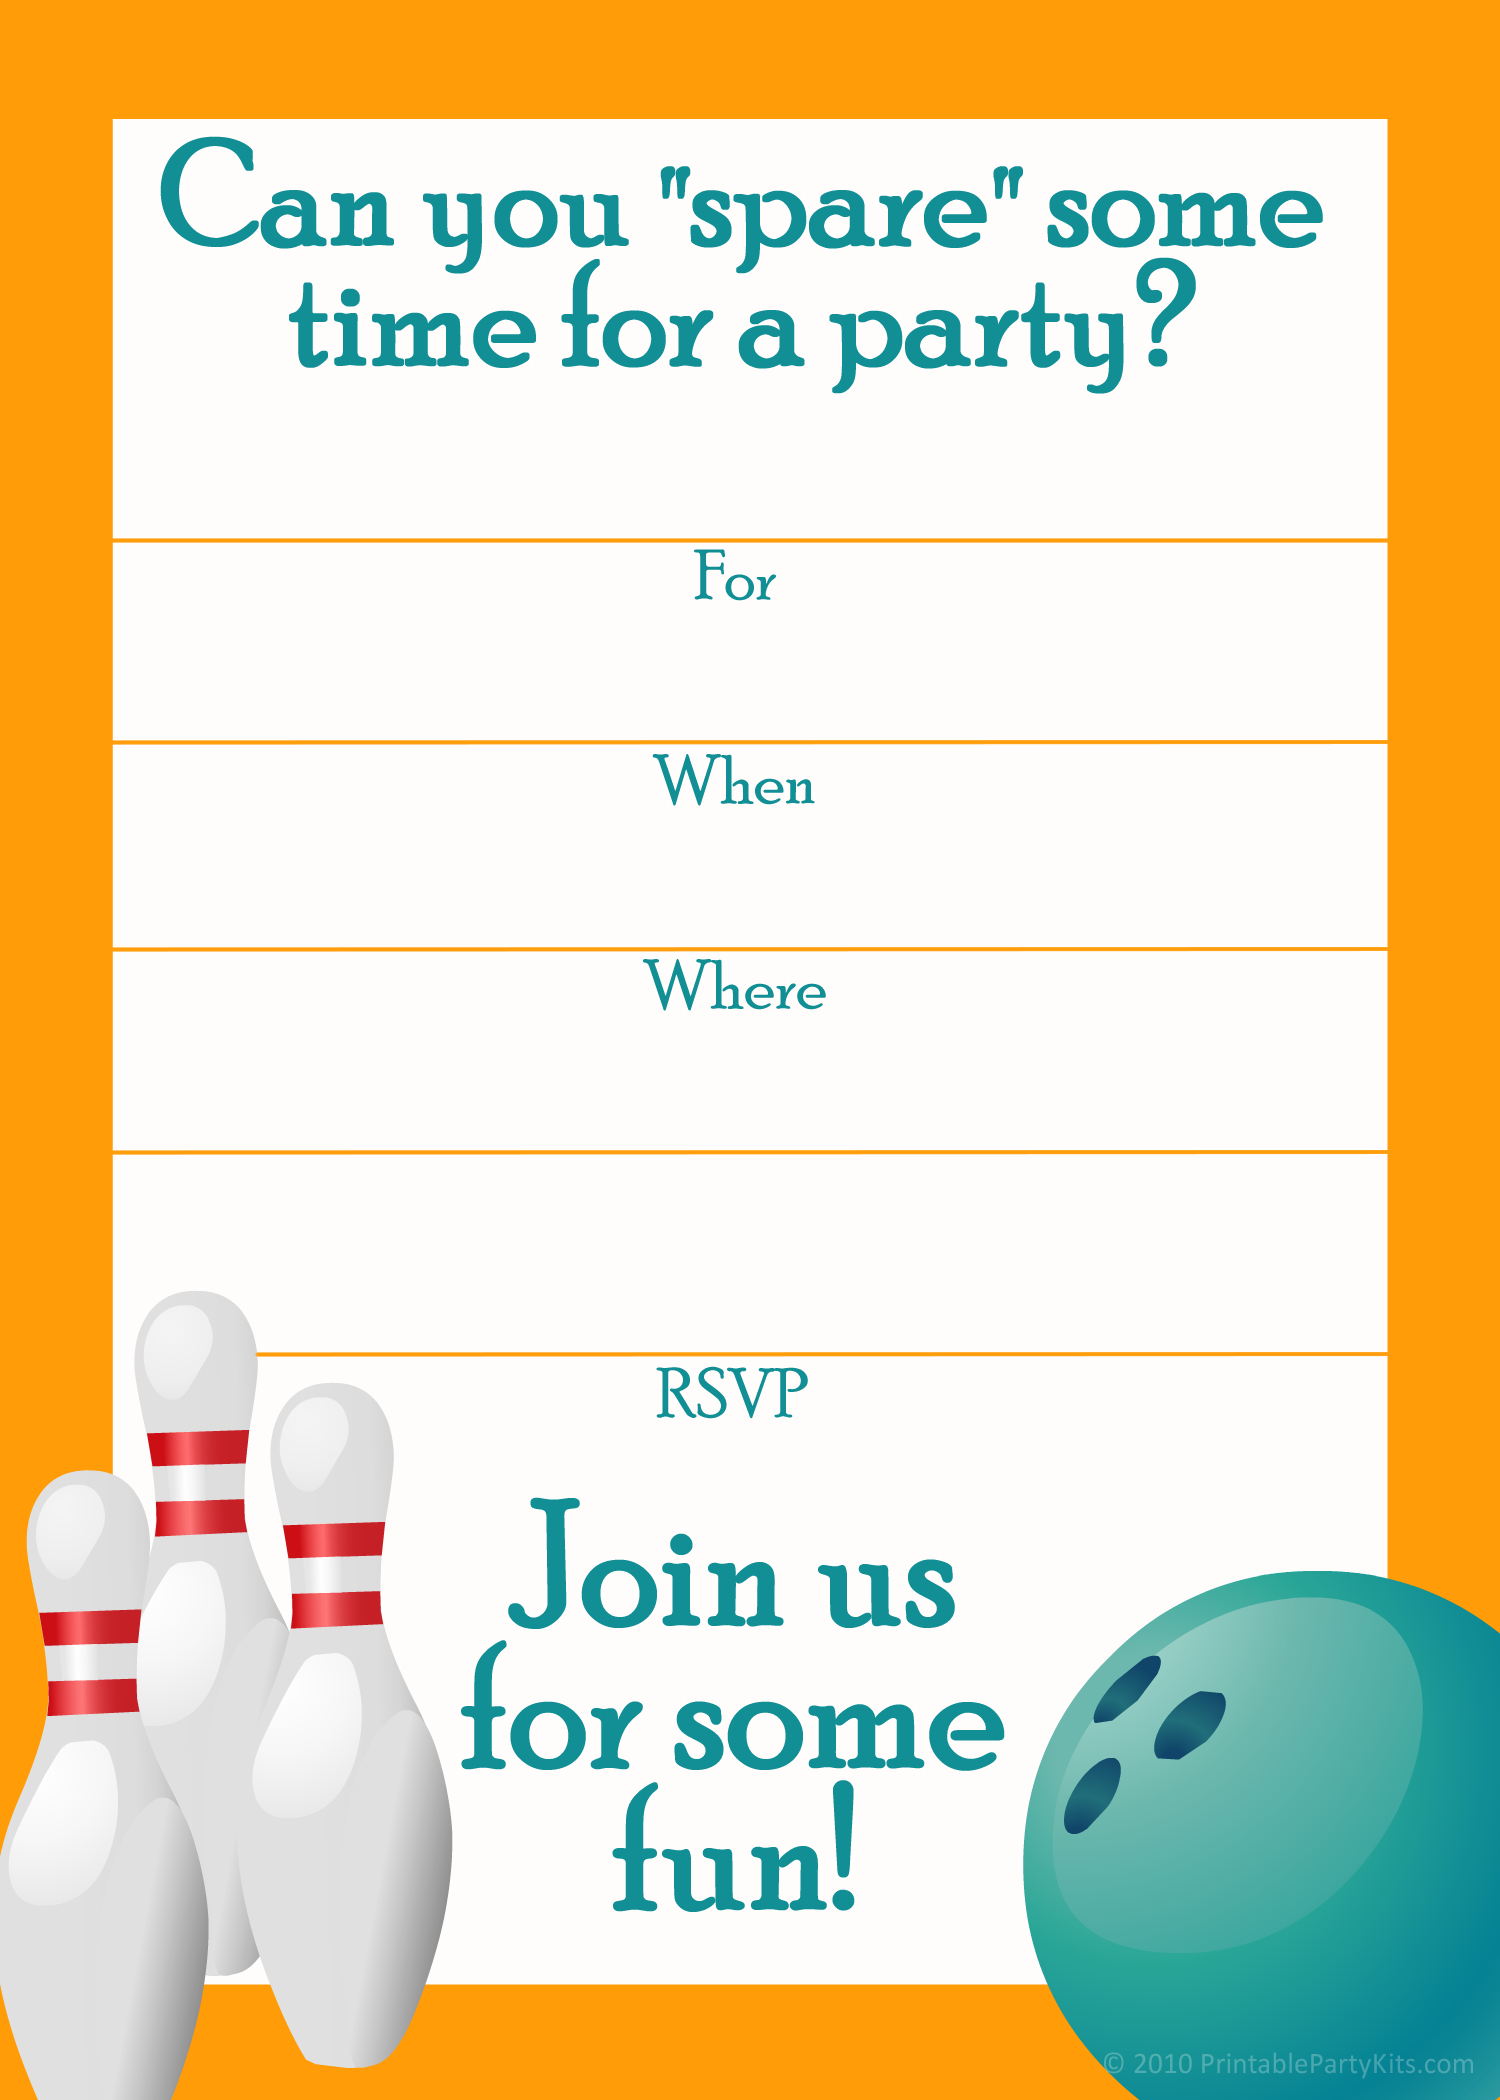 Free Printable Sports Birthday Party Invitations Templates | Party - Free Printable Sports Birthday Invitation Templates